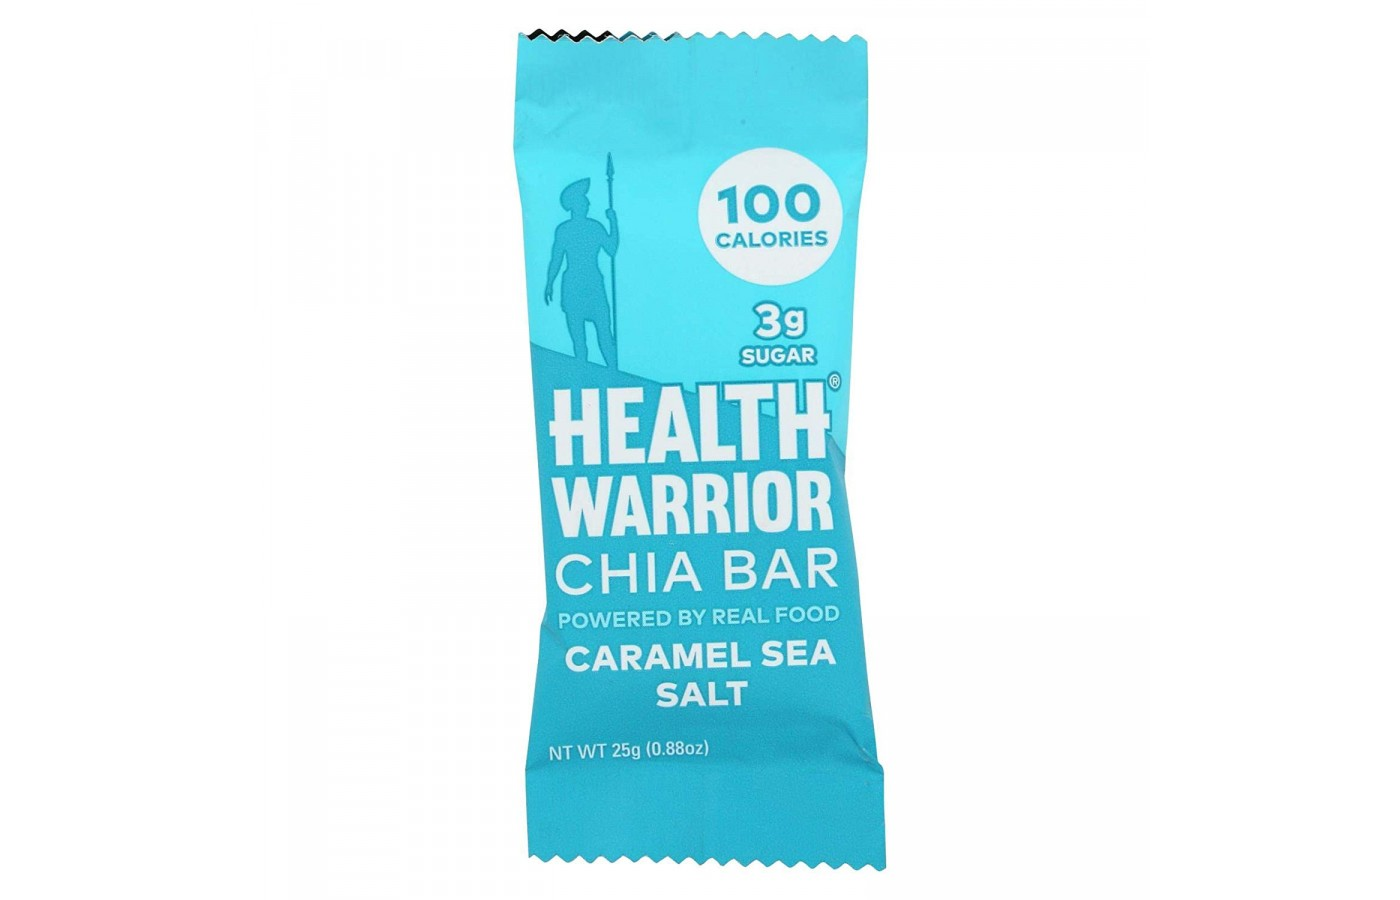 Chia Bars Caramel Sea Salt are a sweet and salty treat reviewers loved.